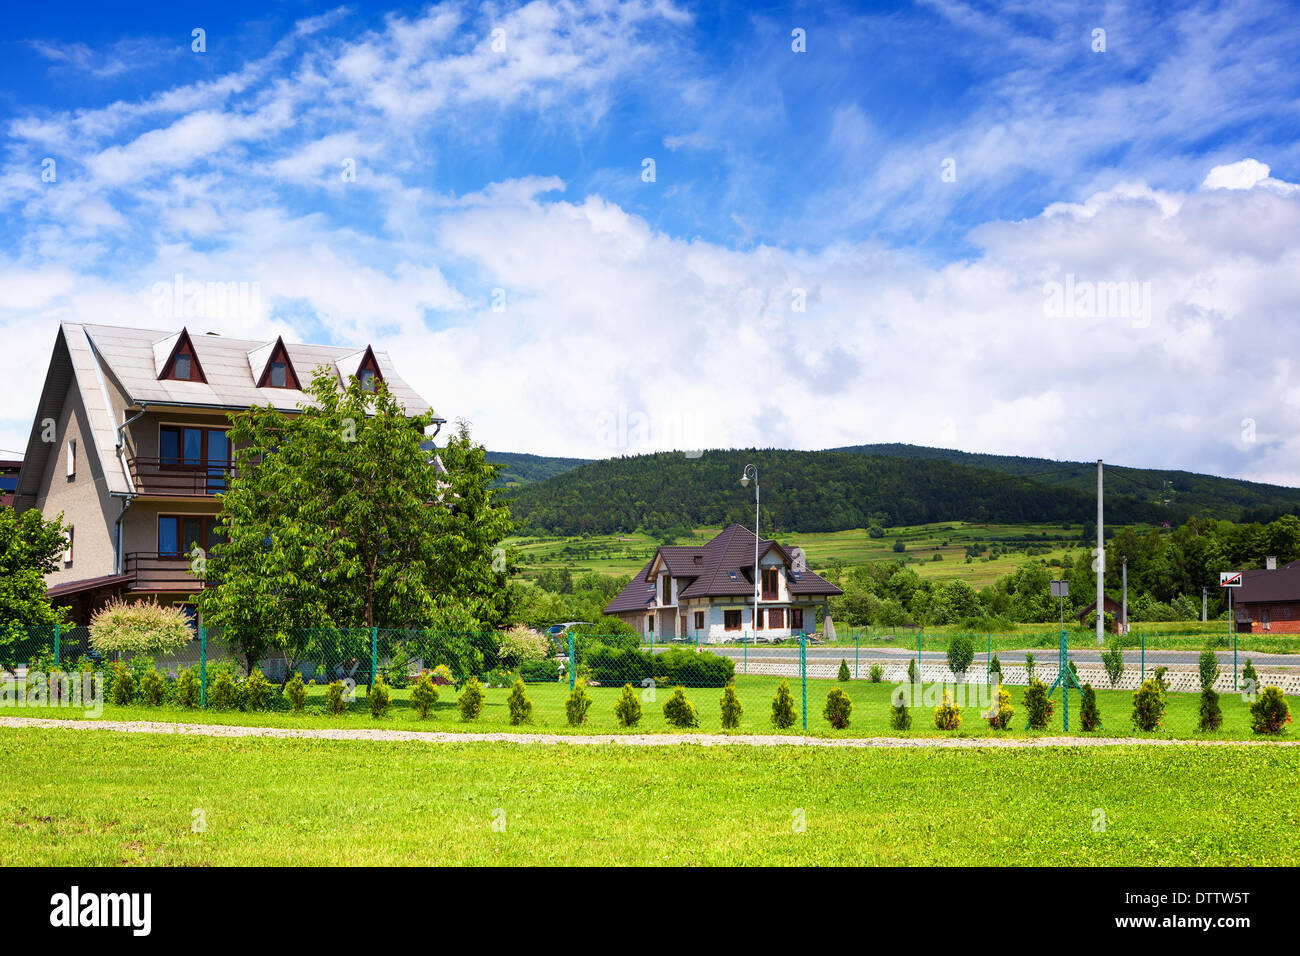 Summer mountain landscape - Stock Image